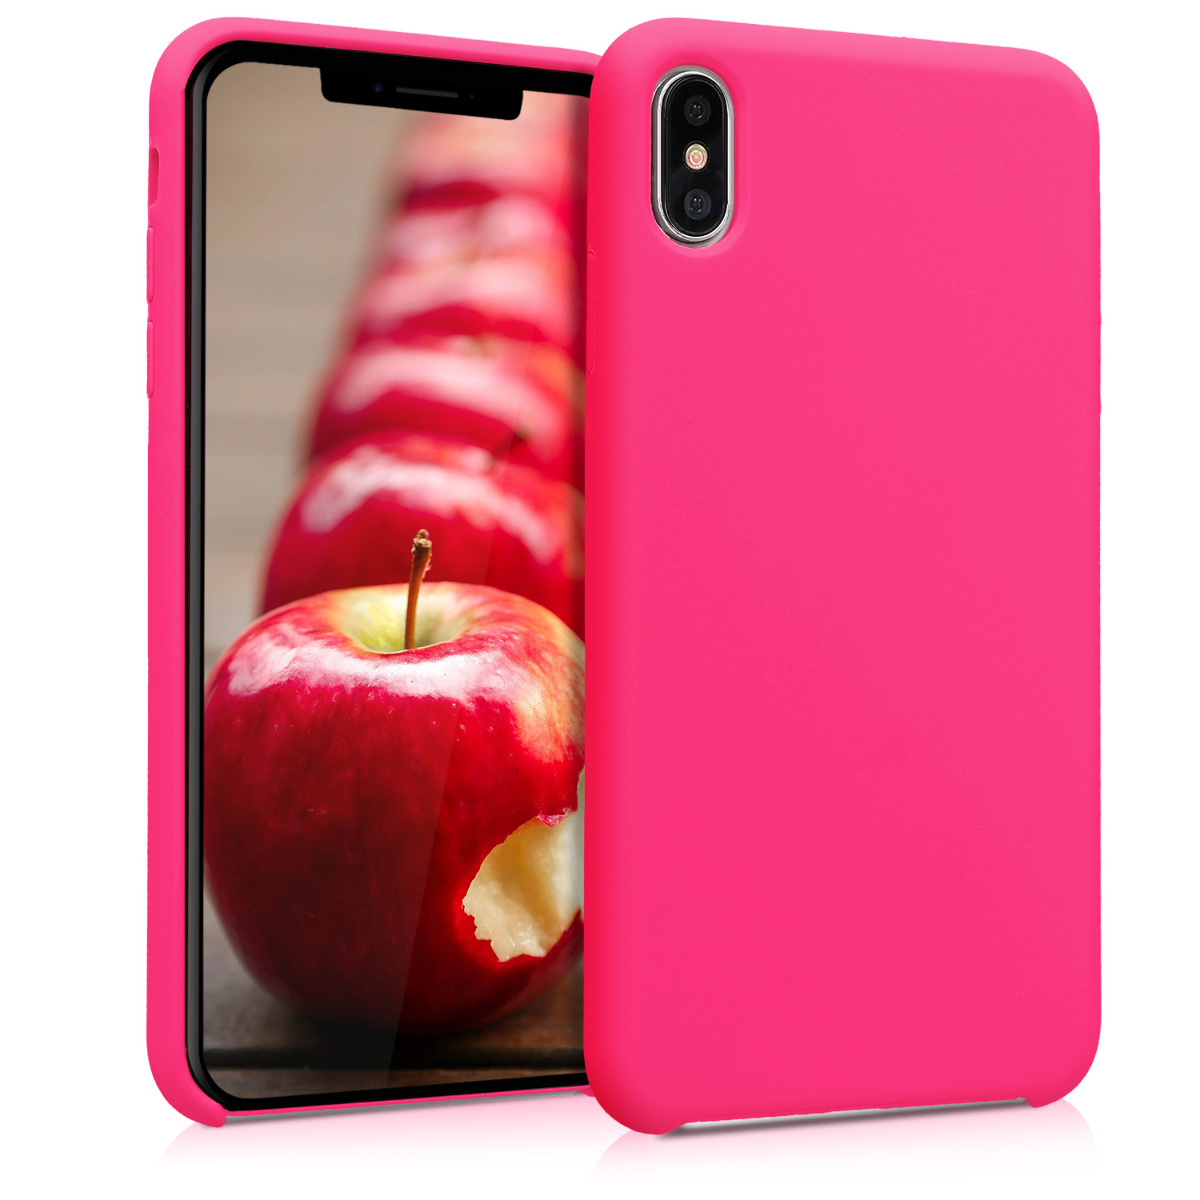 KW TPU Θήκη Σιλικόνης Apple iPhone XS Max - Soft Flexible Rubber Protective Cover - Neon Pink (45909.08)